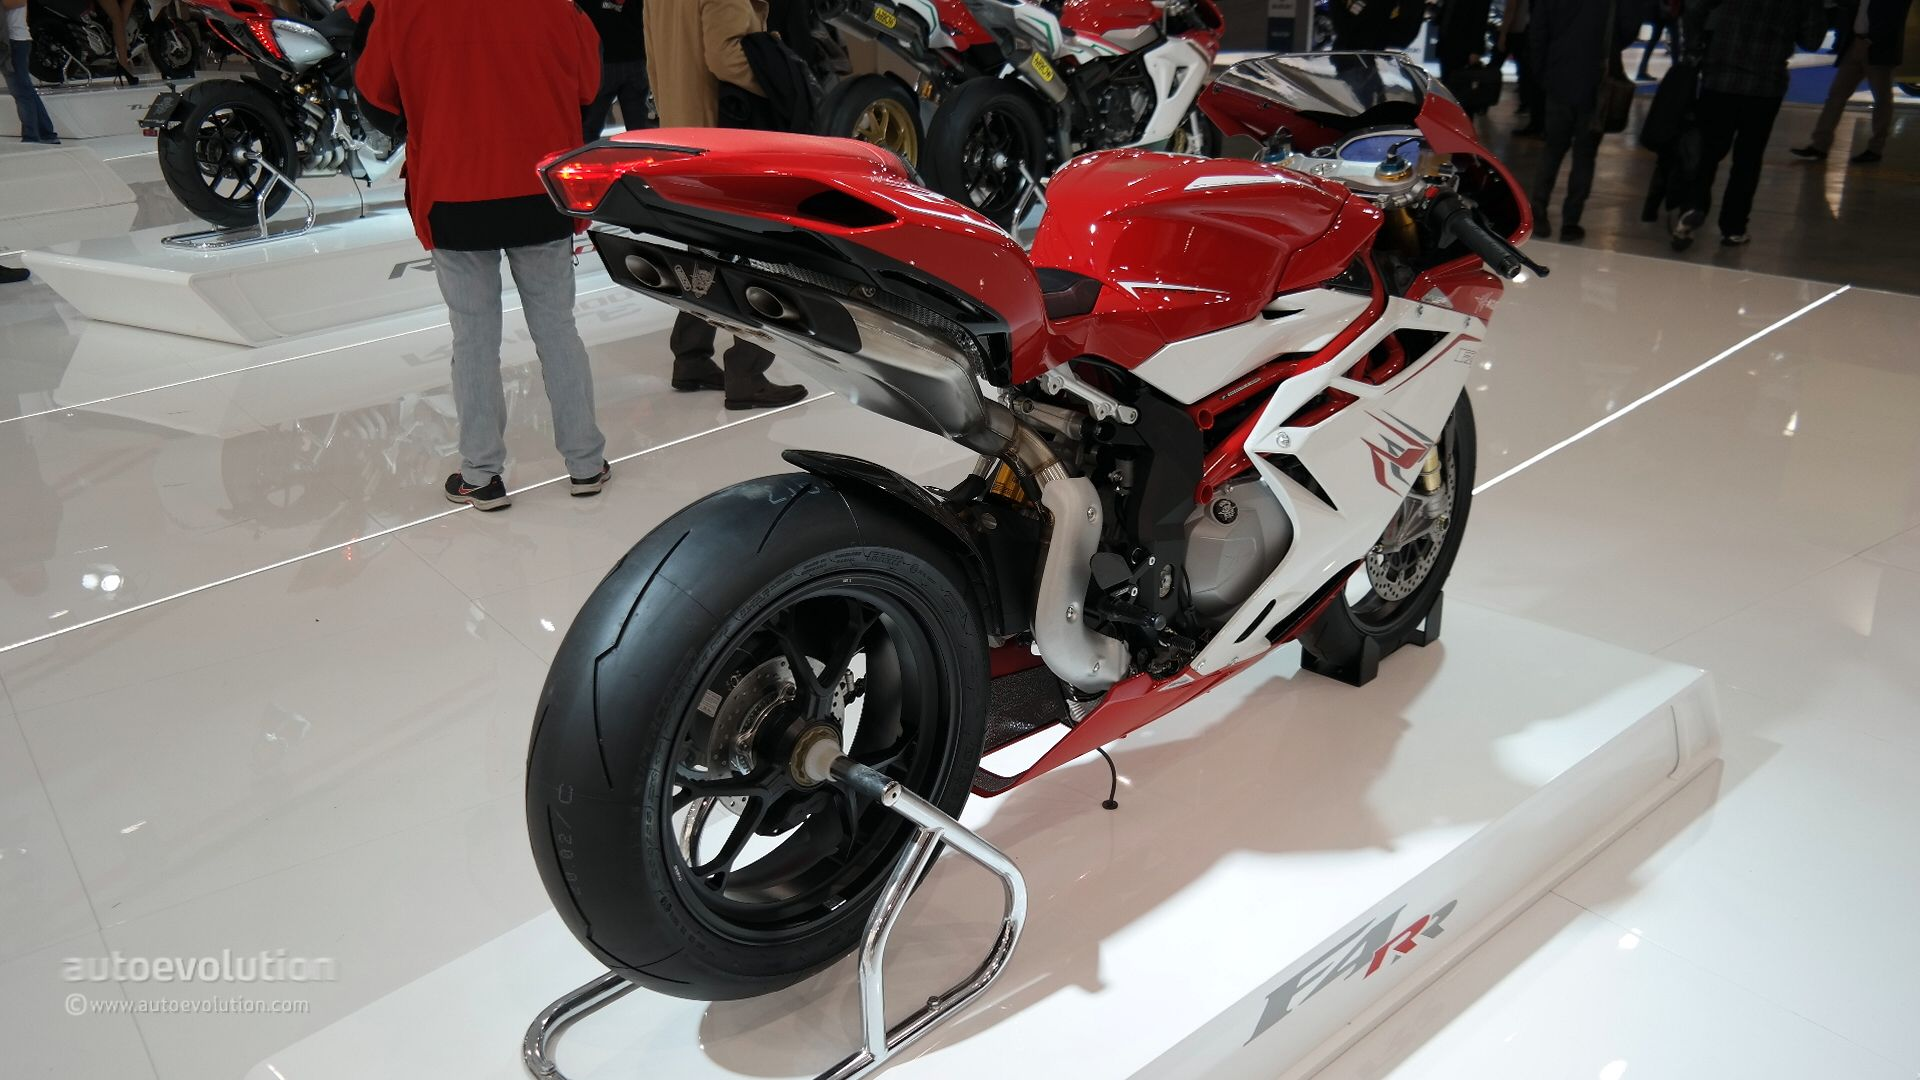 MV Agusta has been working around the clock to improve the performance ...